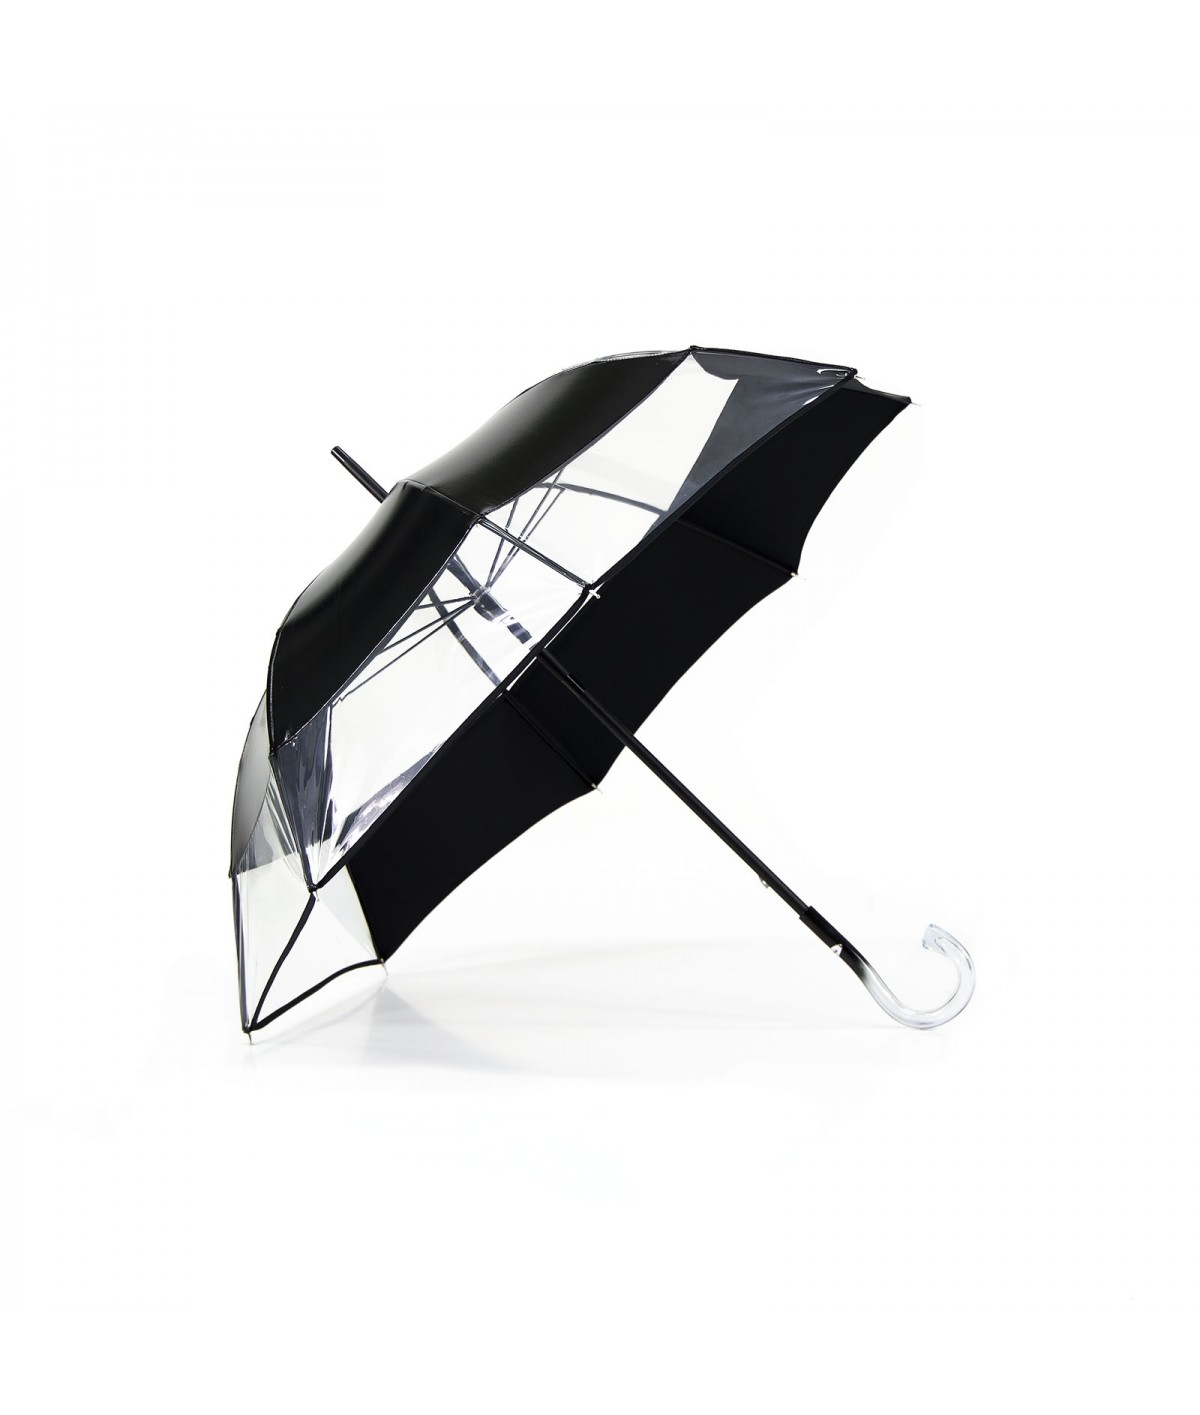 "→ Parapluie ""Le Bi-Gout"" - Noir - Made in France par Maison Pierre Vaux"